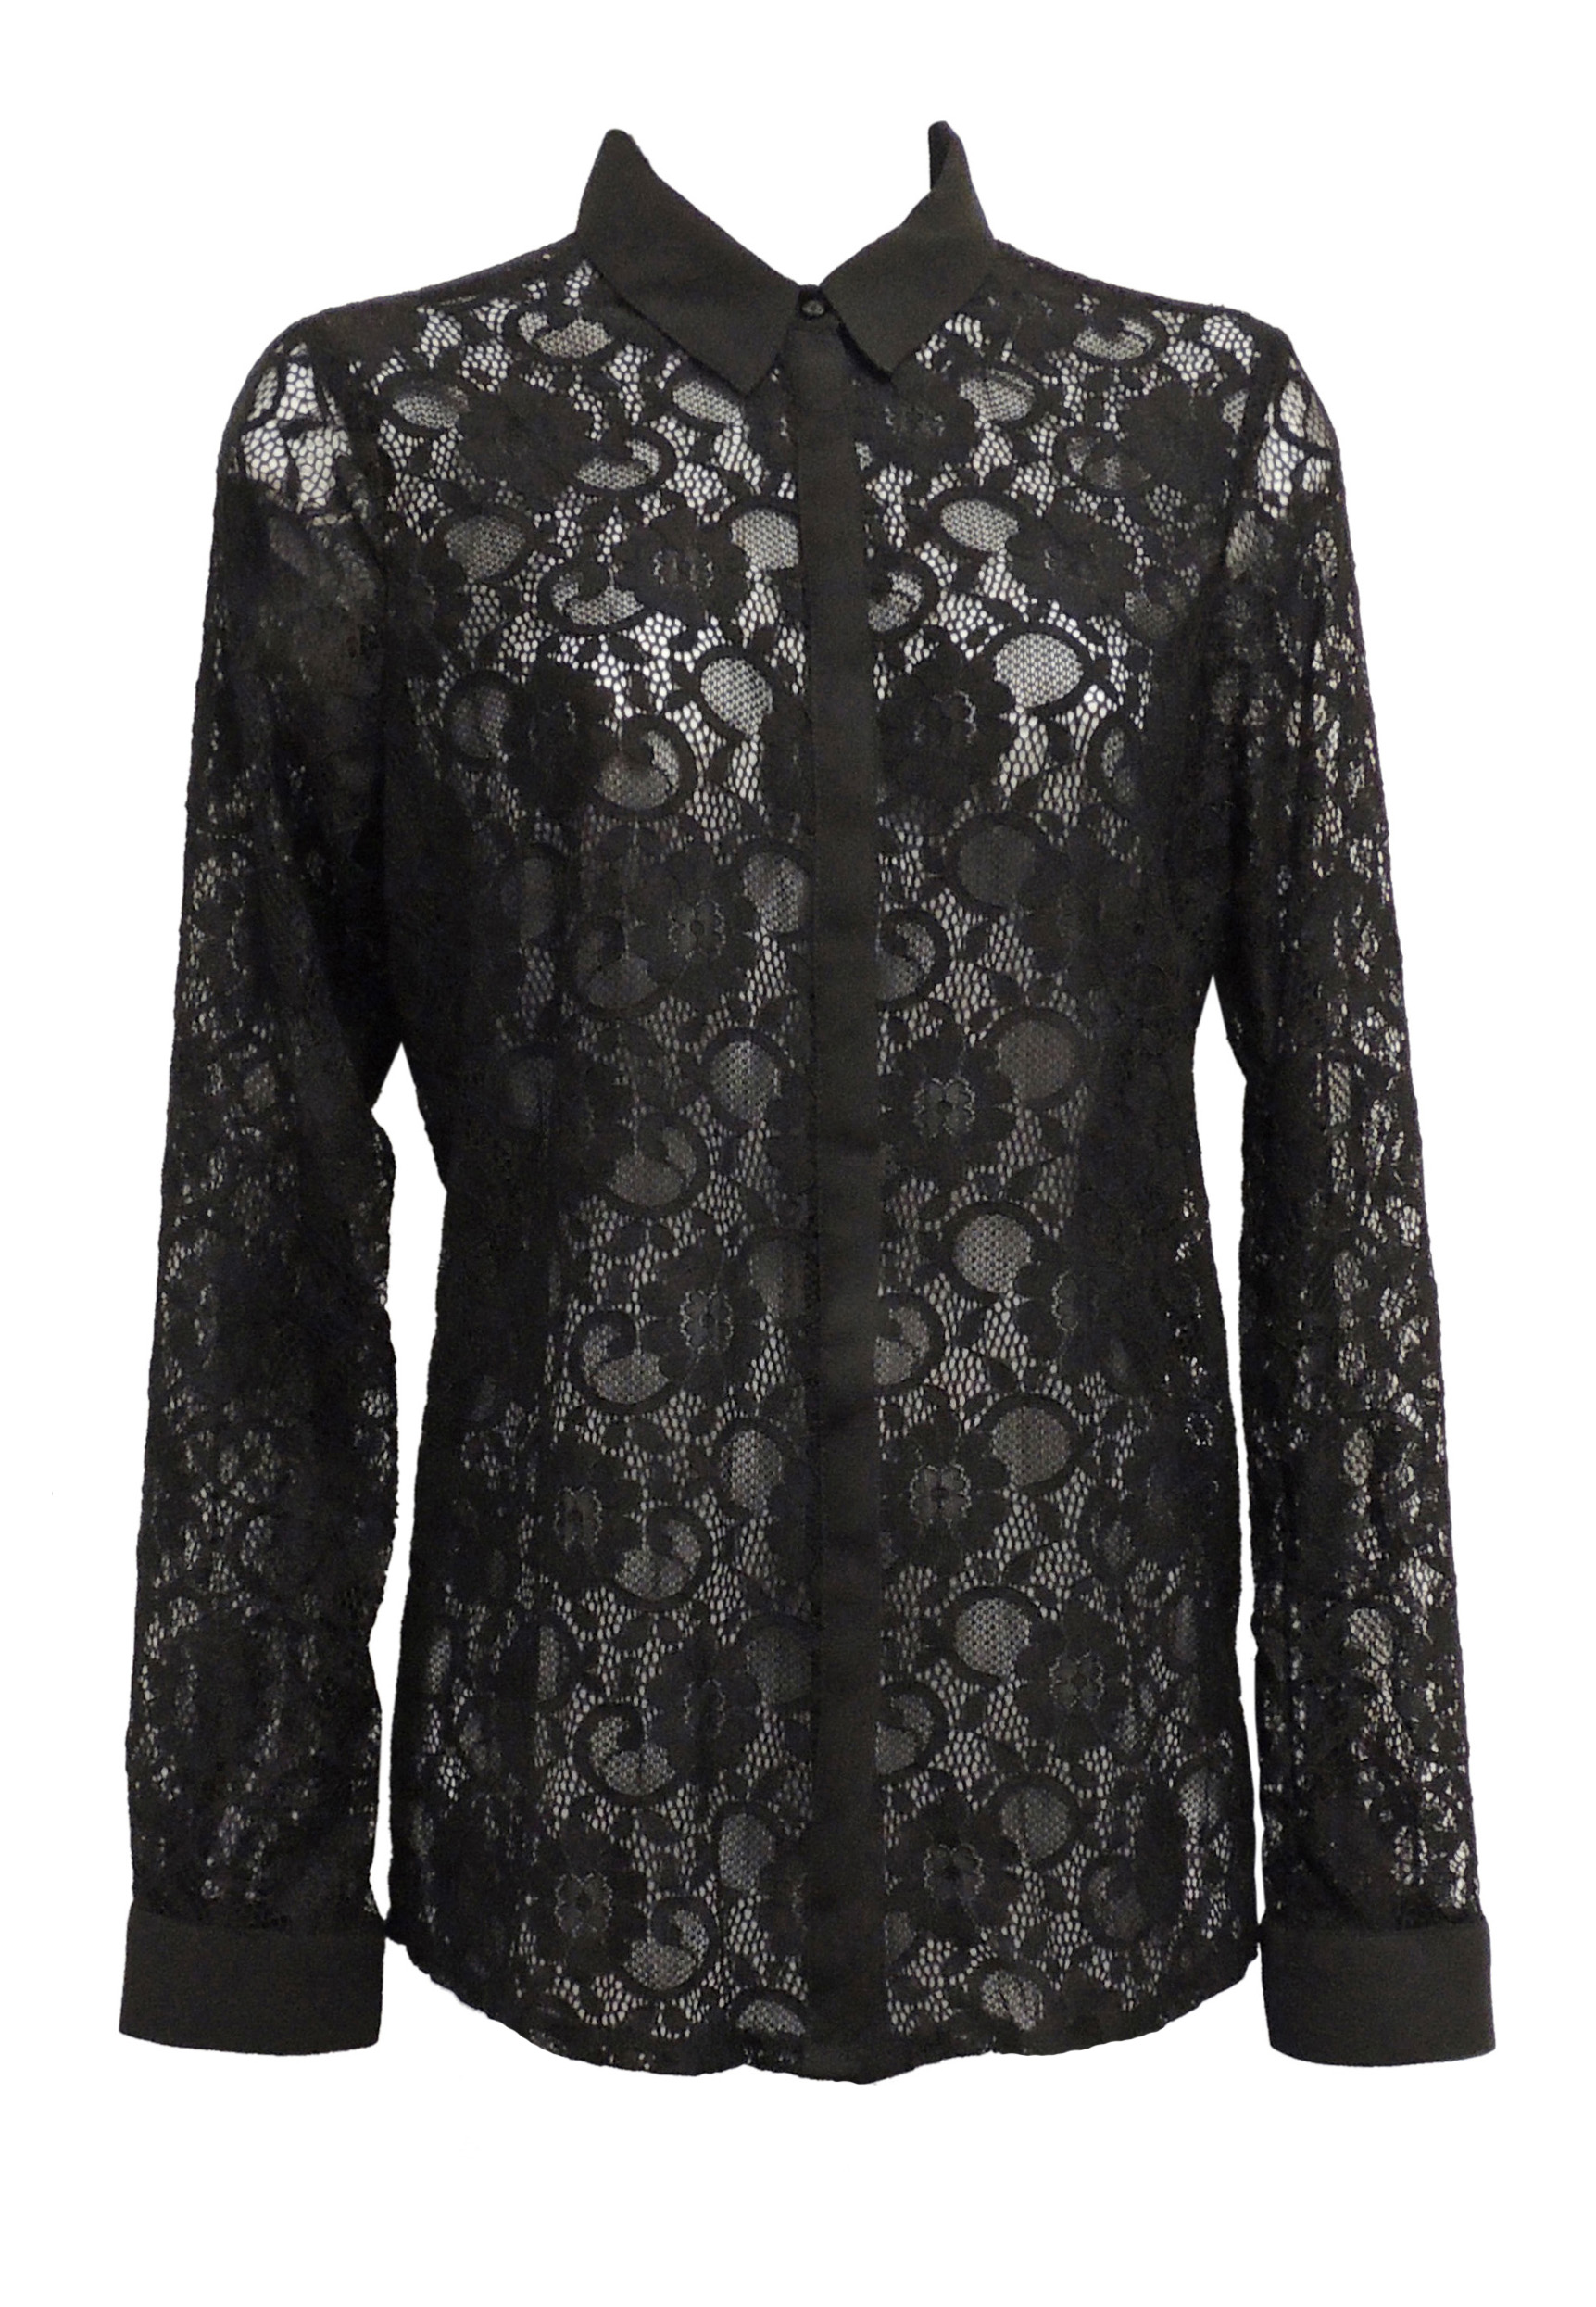 a48d71aa38b Details about New Ladies Black Vintage Style Sheer Lace-Look Shirt Blouse  UK 8-20